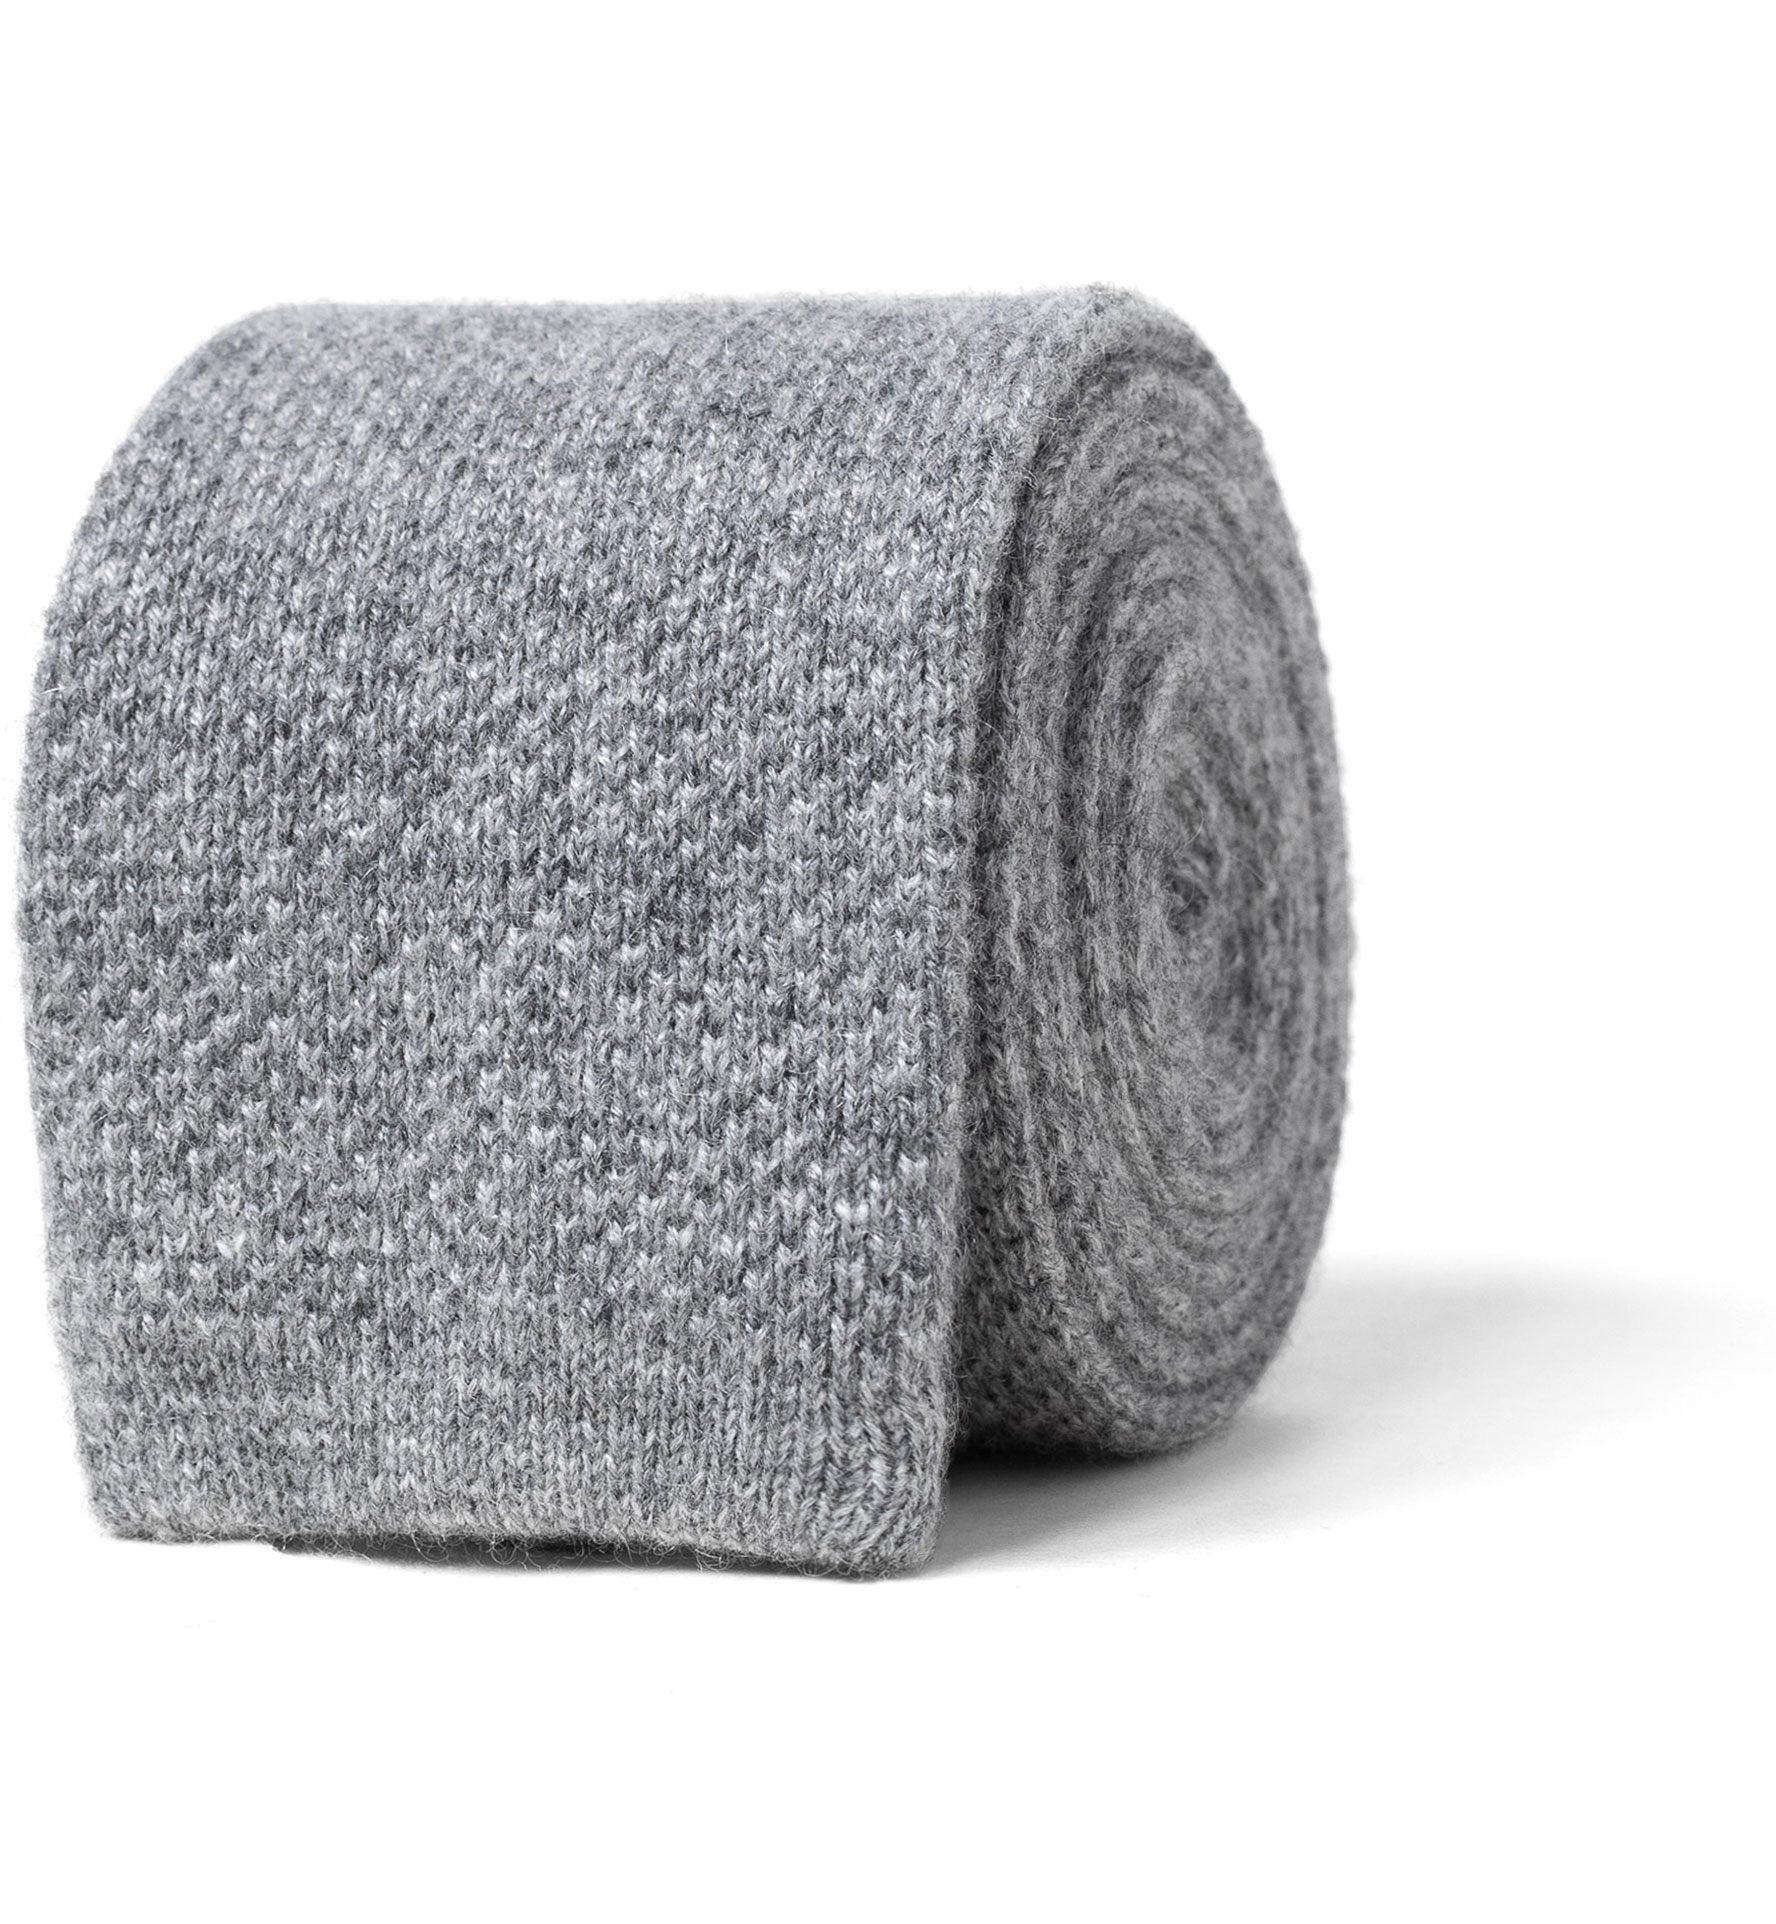 Zoom Image of Grey Cashmere Knit Tie